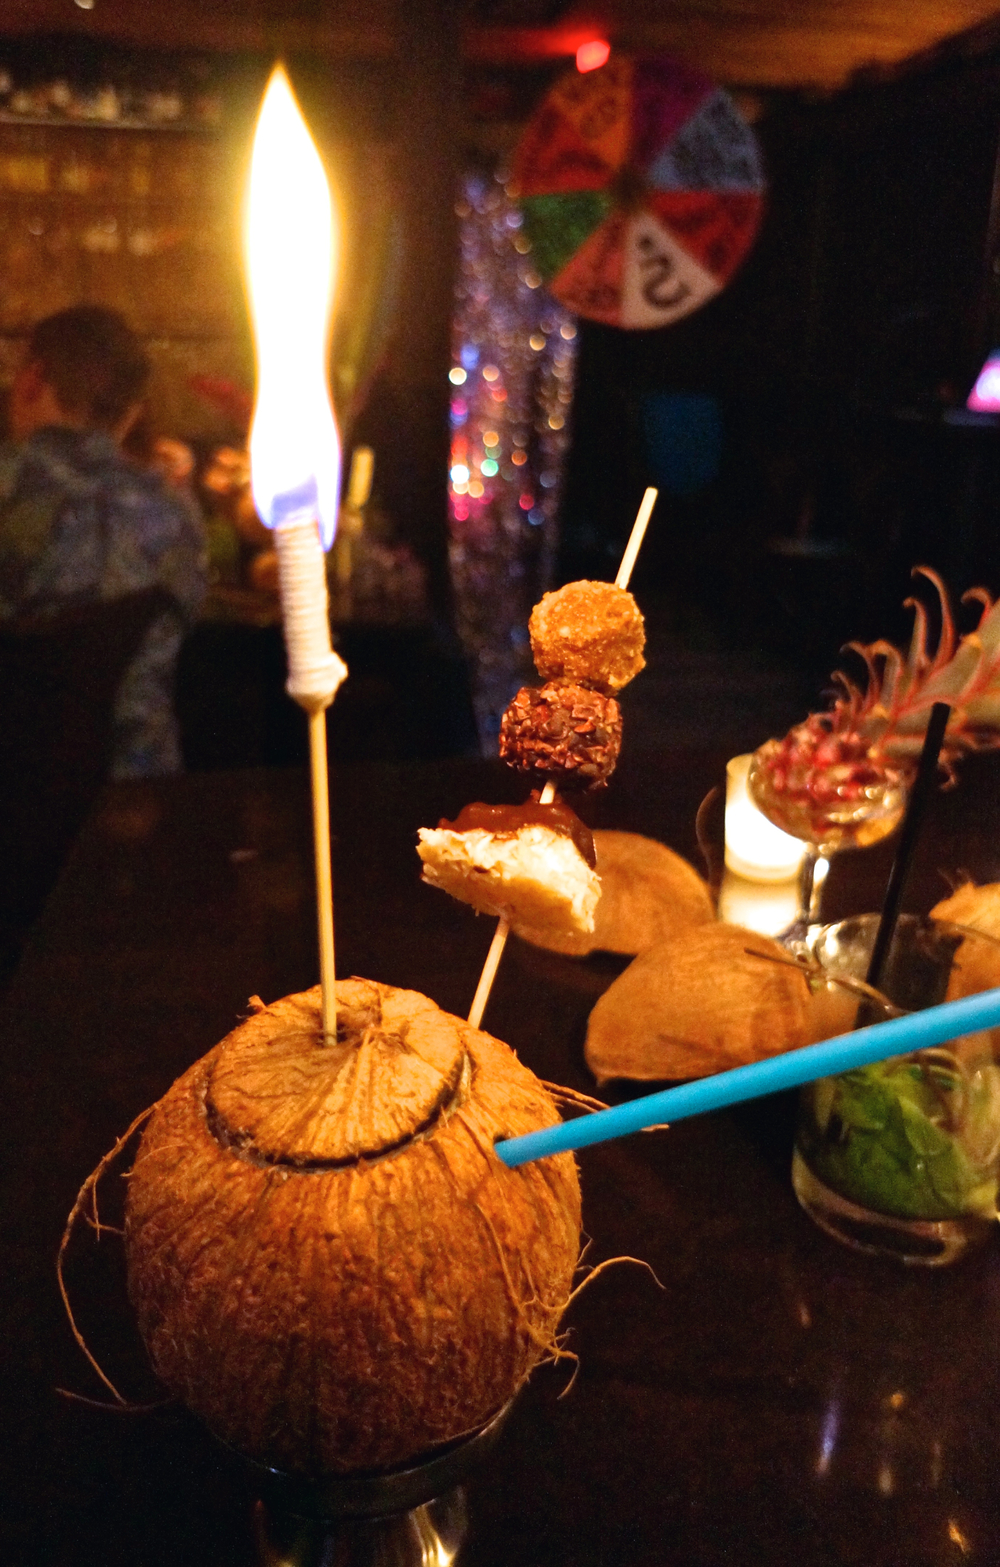 coconut-club-planet-coconut-fire.jpg